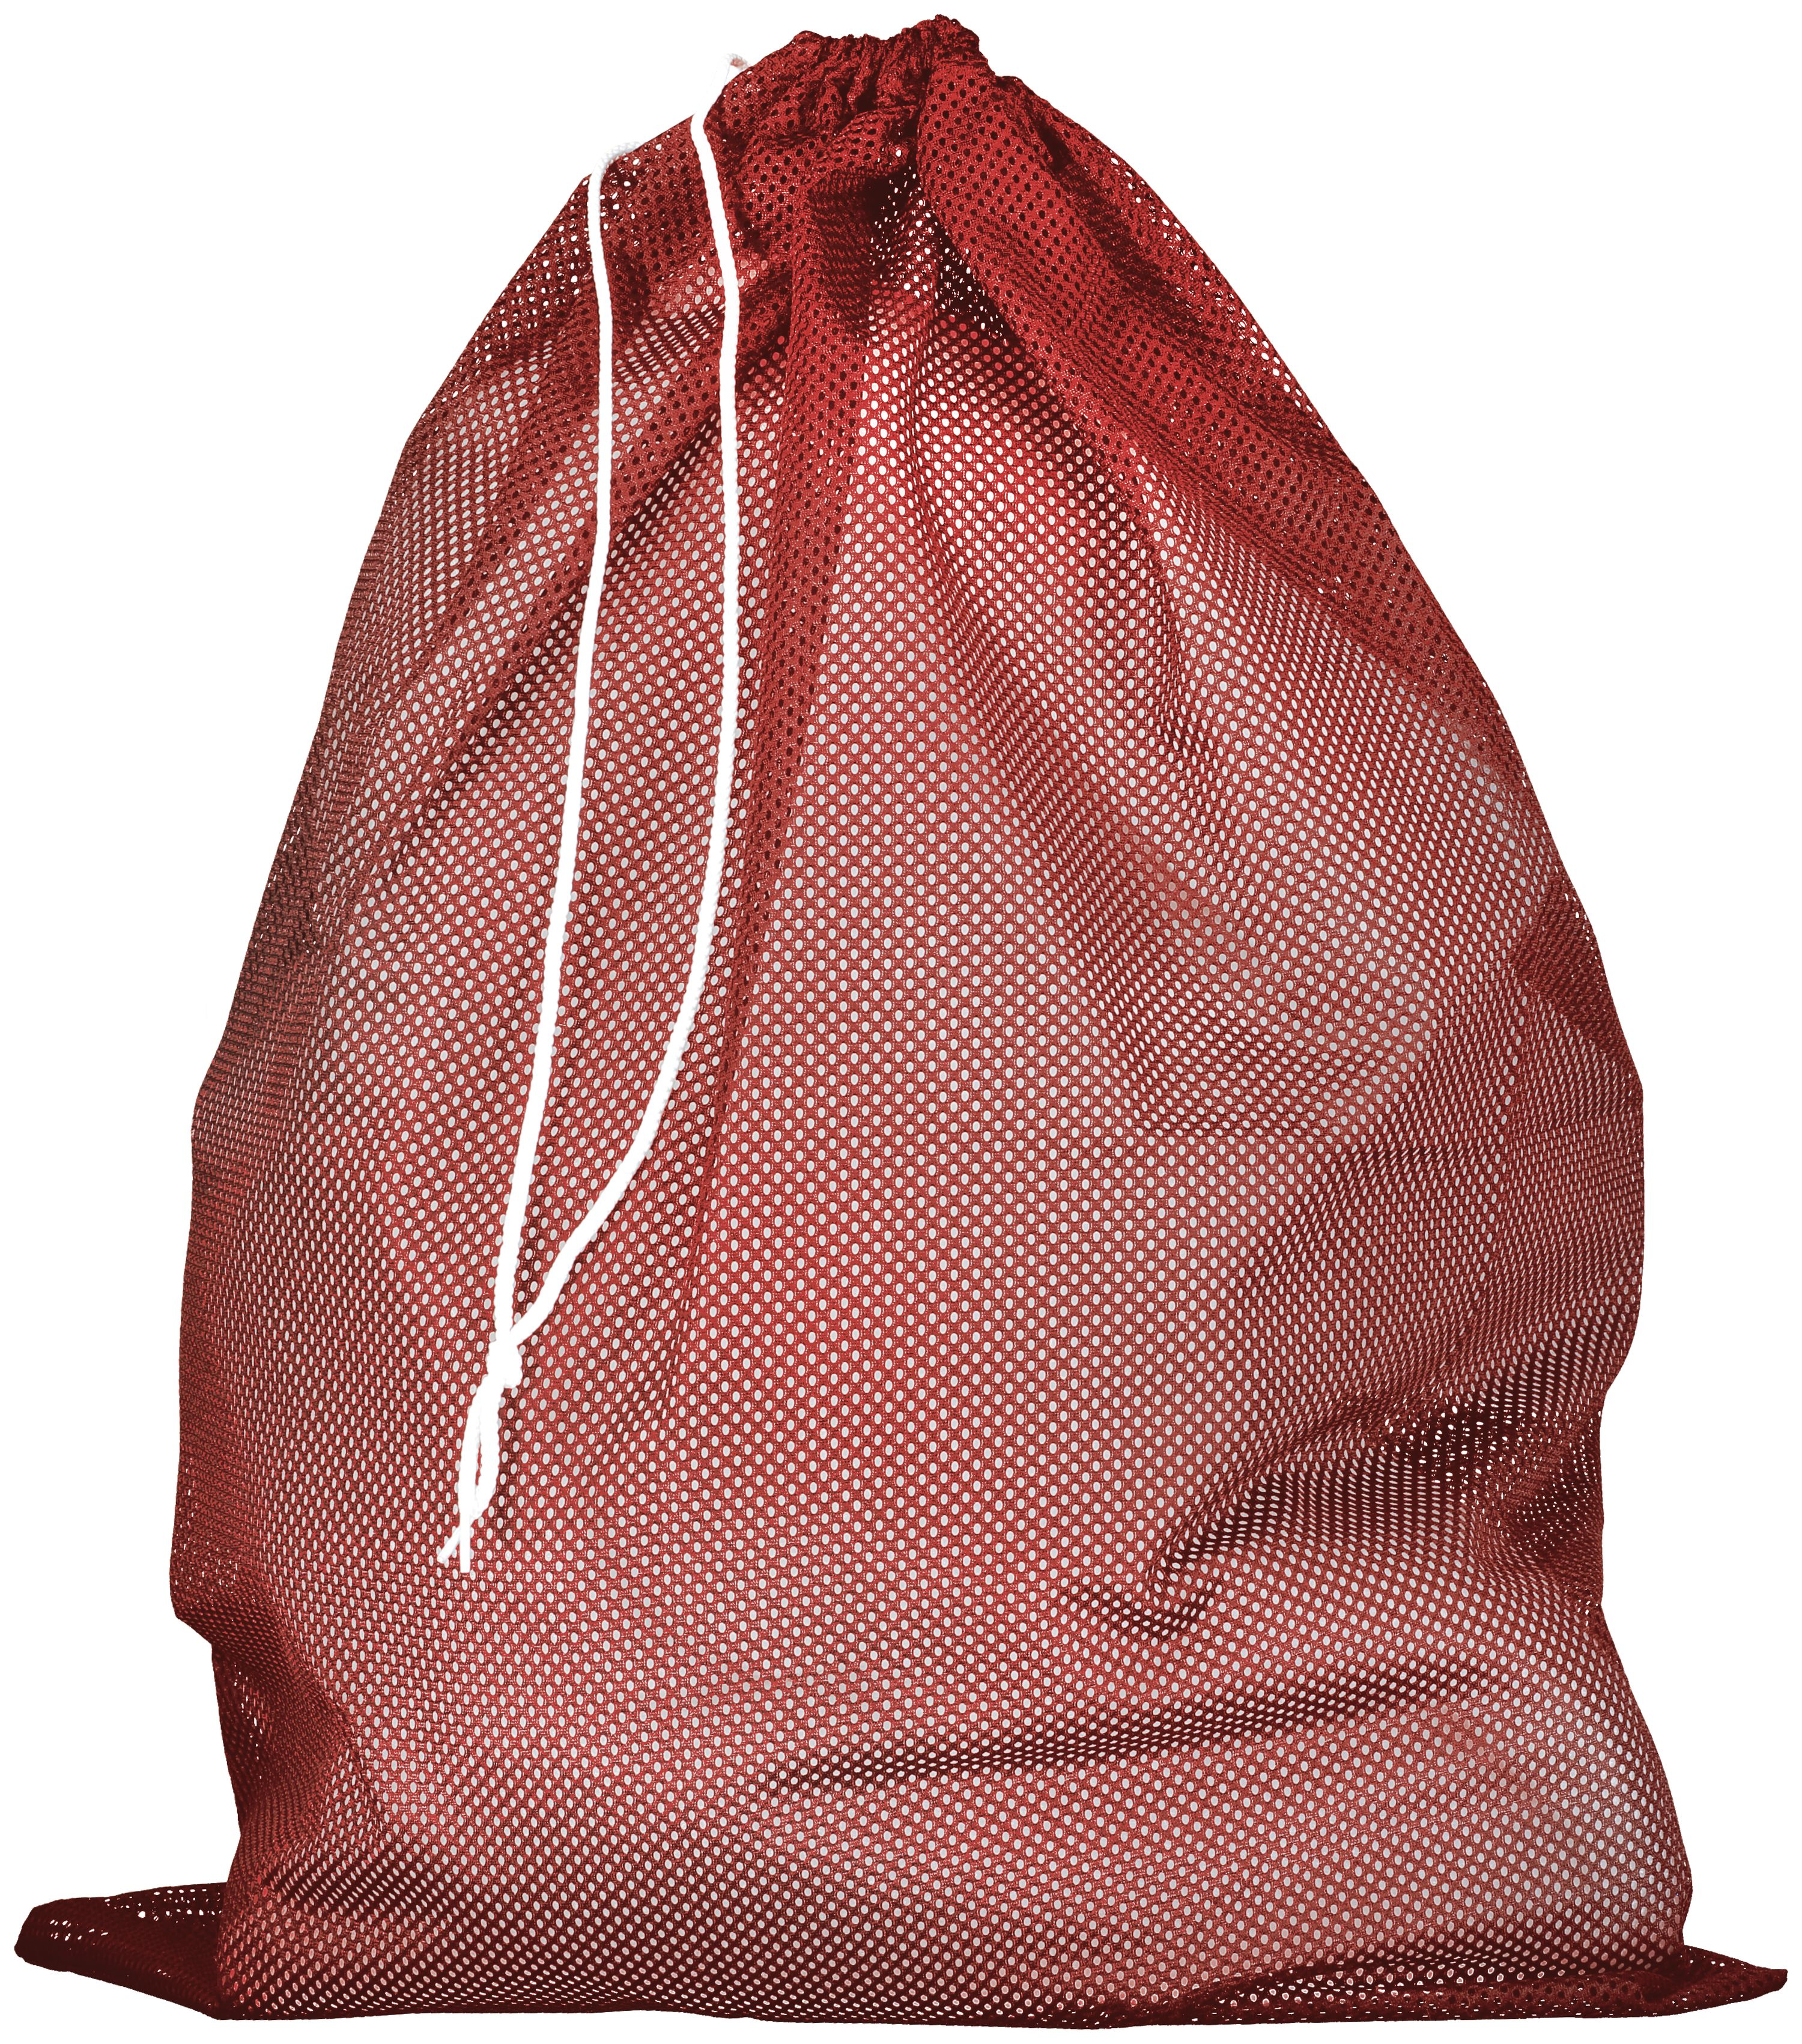 Mesh Laundry Bag - True Red